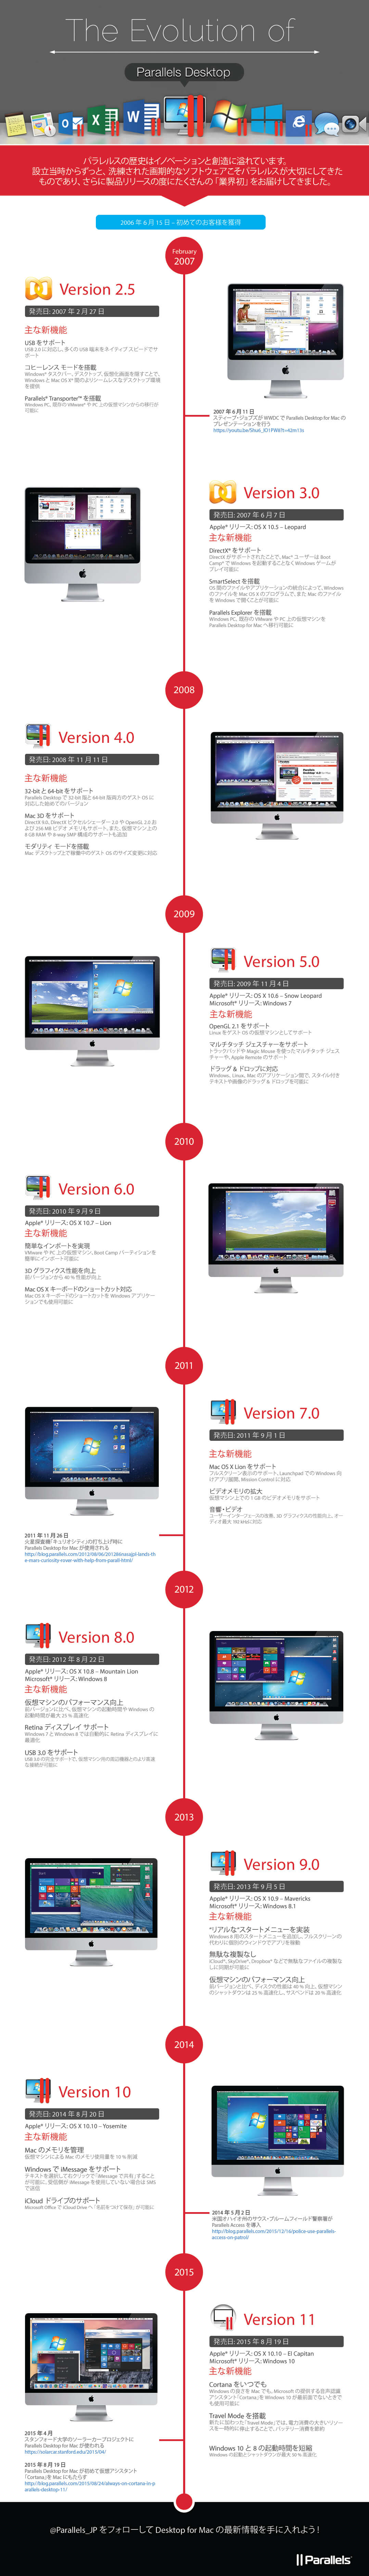 History_of_Parallels_Final JP (1)